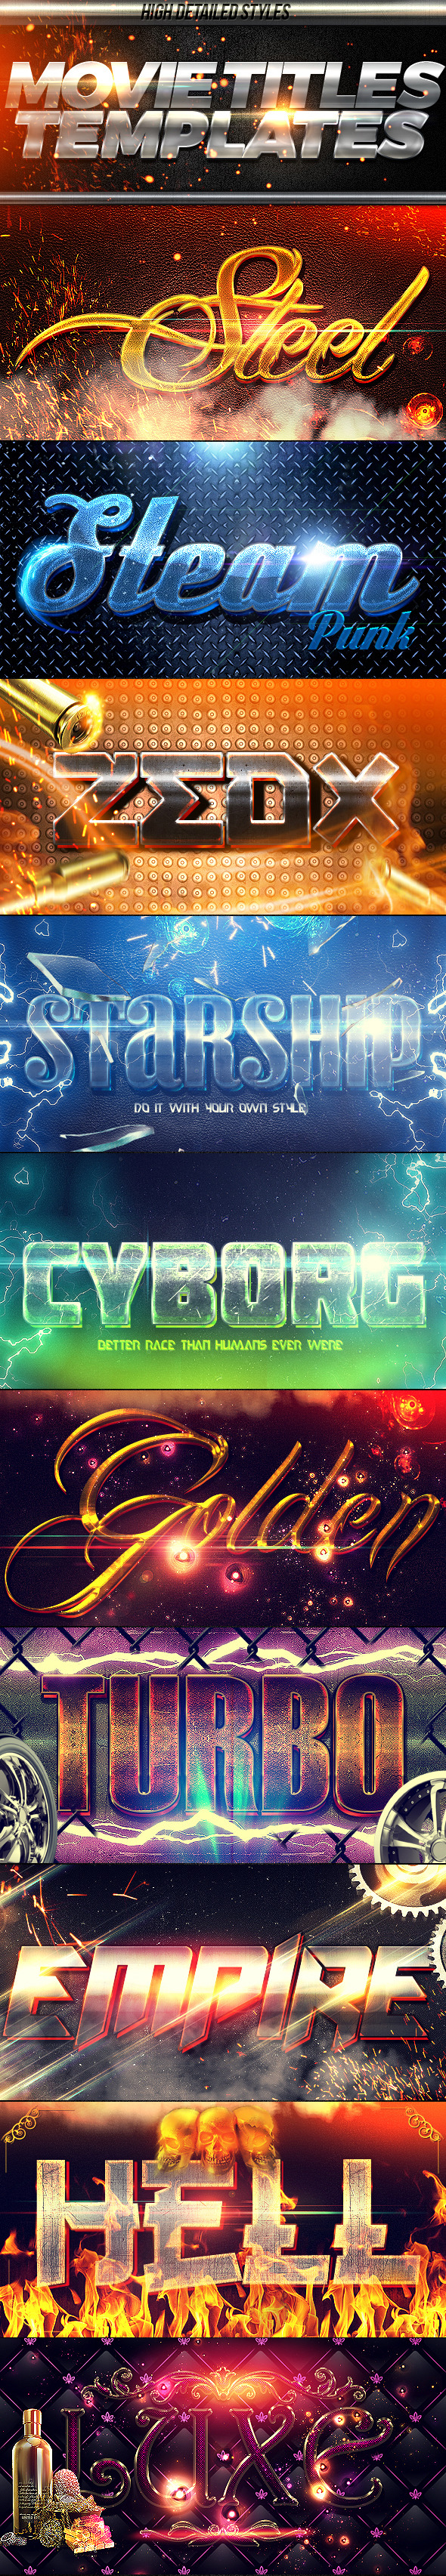 GraphicRiver Movie Titles PSD Template 10783976